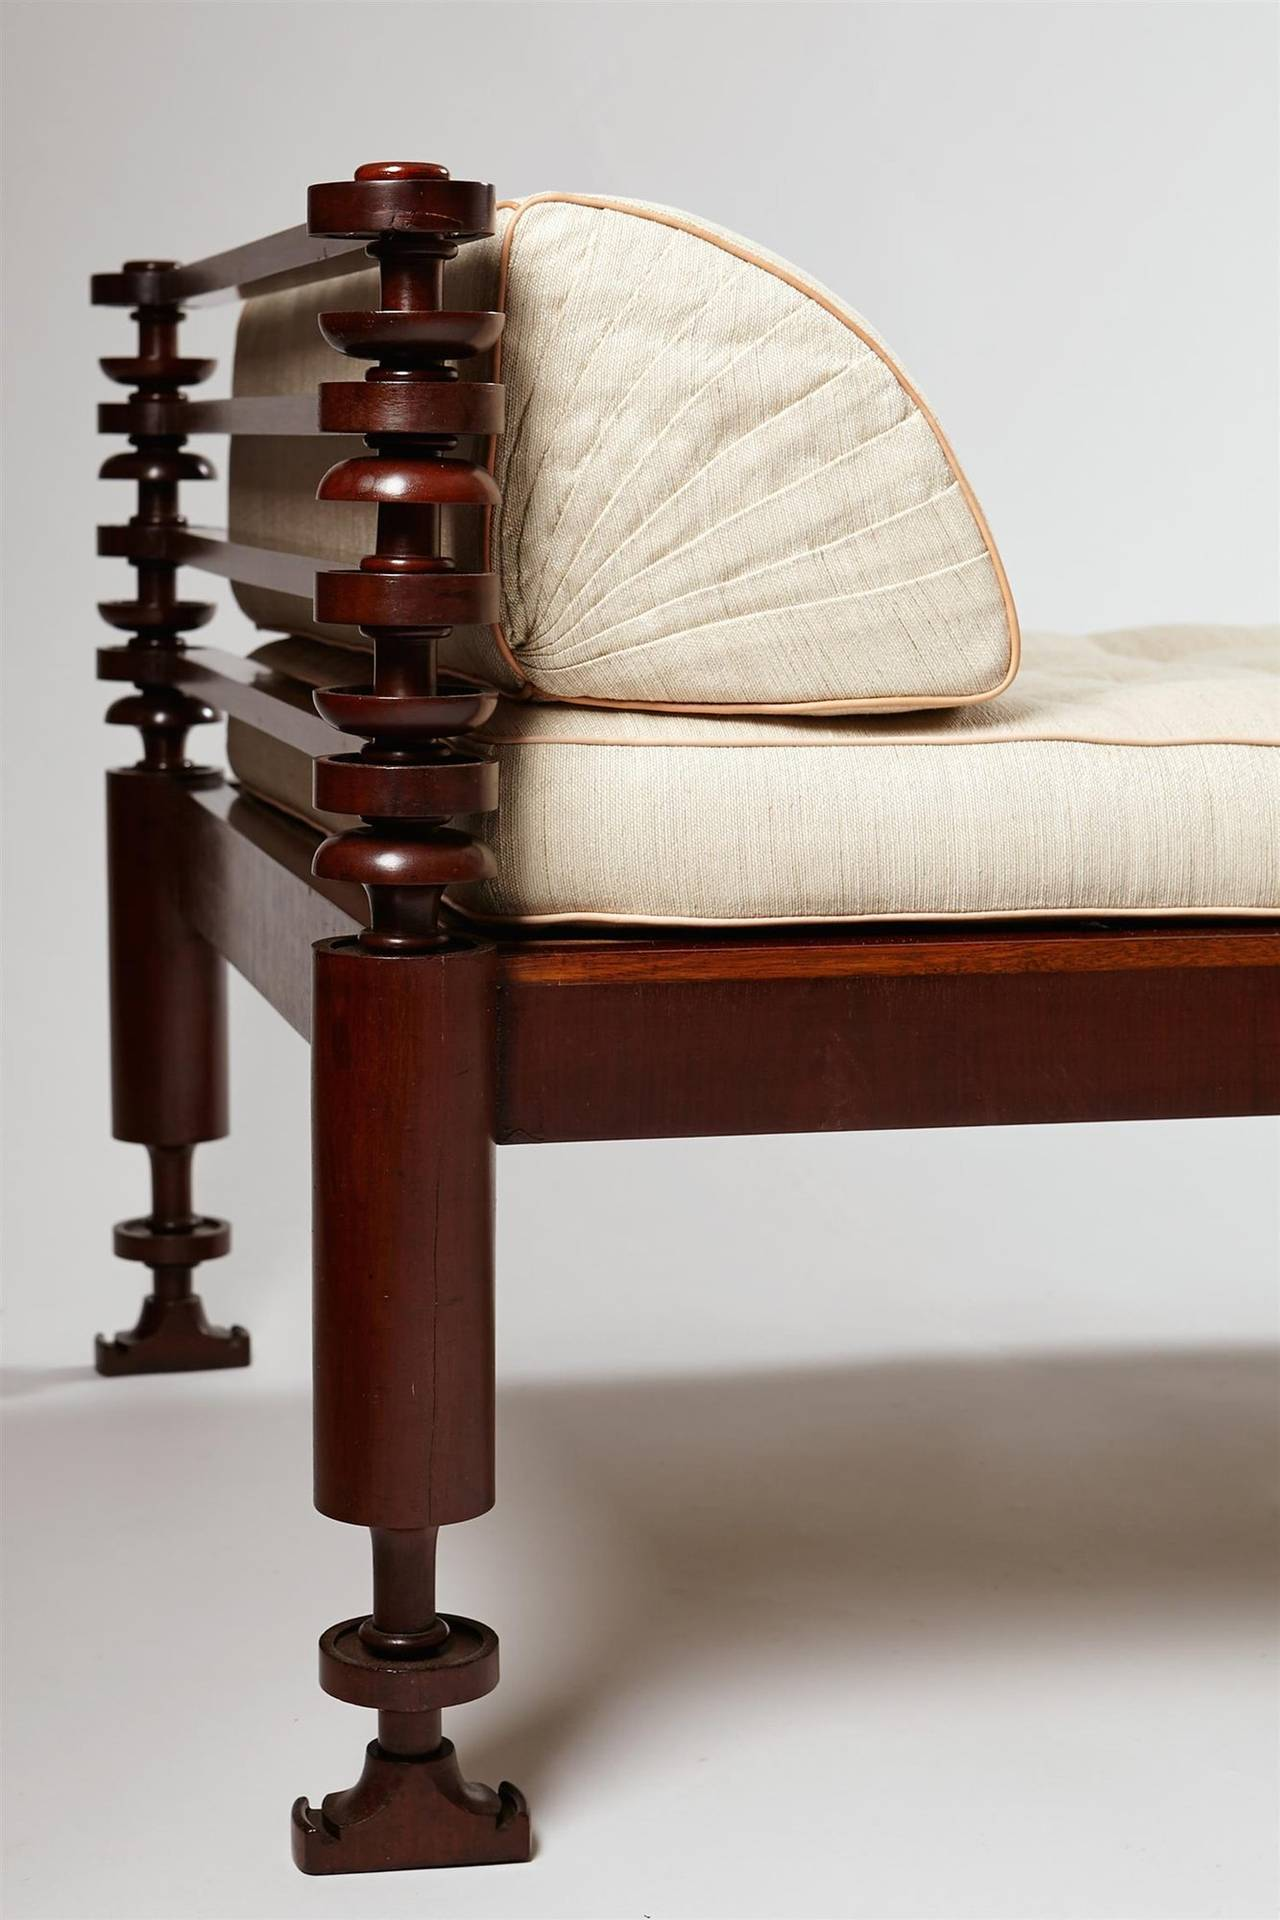 Daybed Designed by Kaare Klint for NM Rasmussen, Denmark, 1917 8